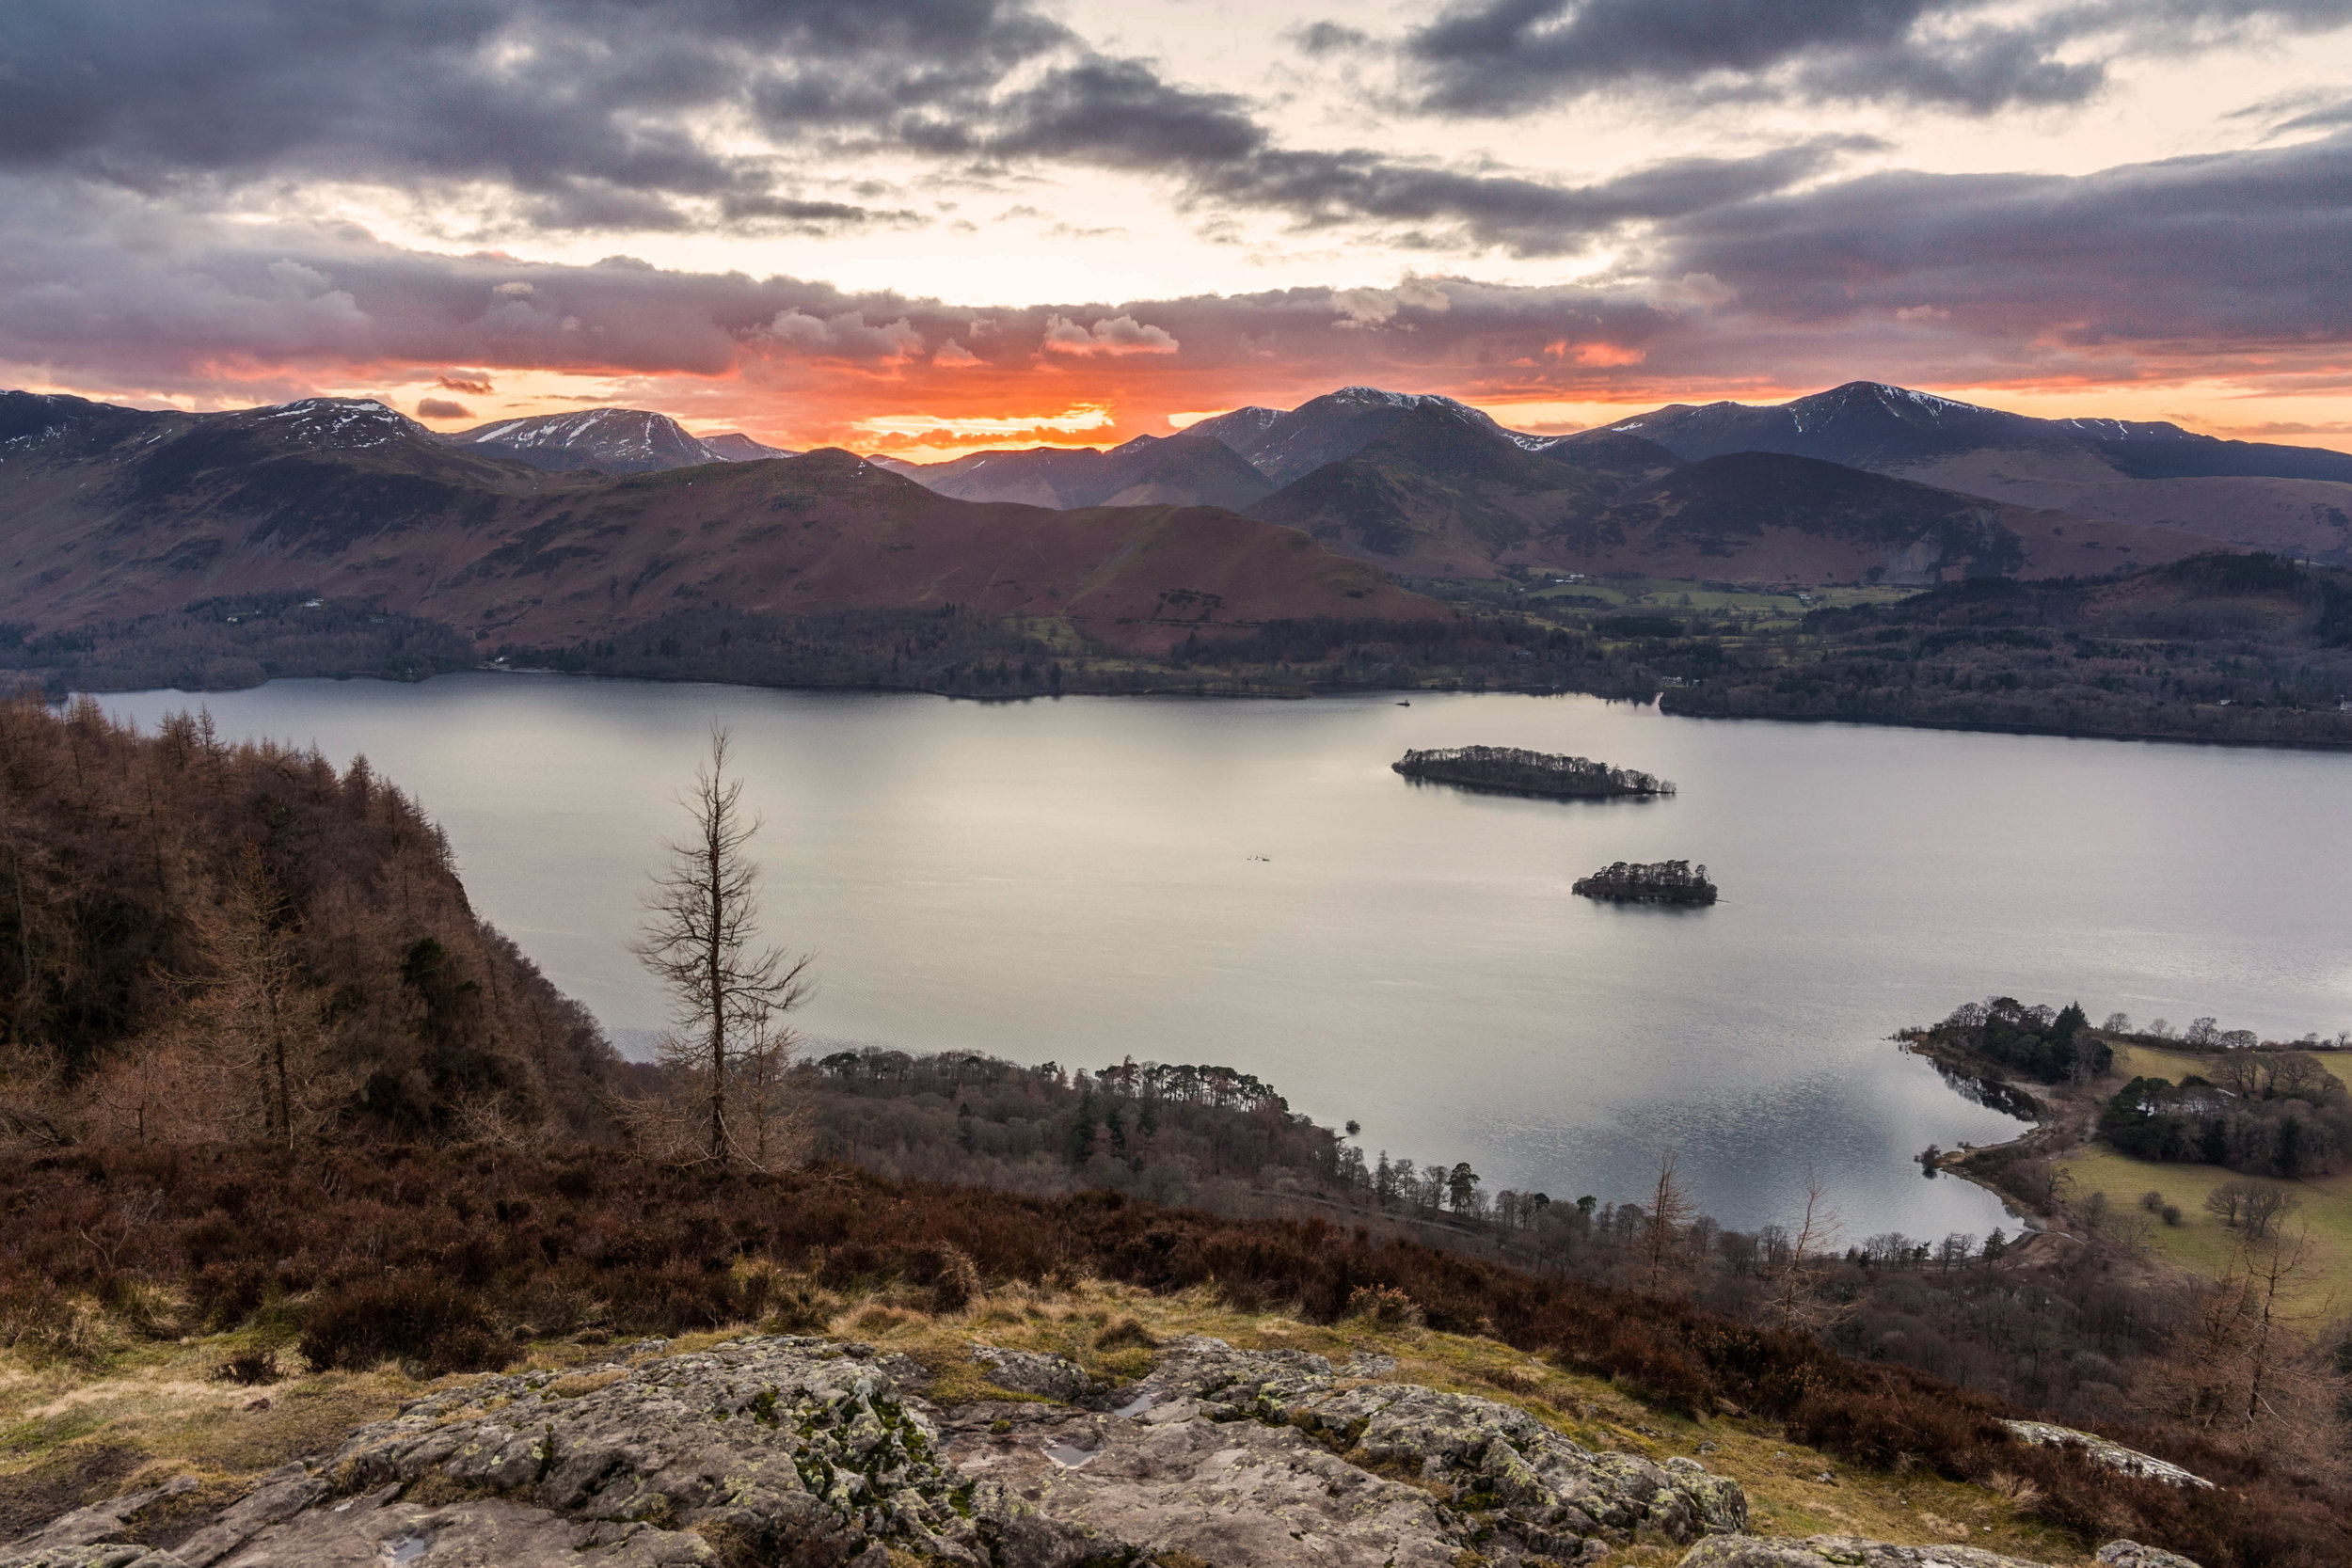 Burning Clouds over Cat Bells and Derwentwater.